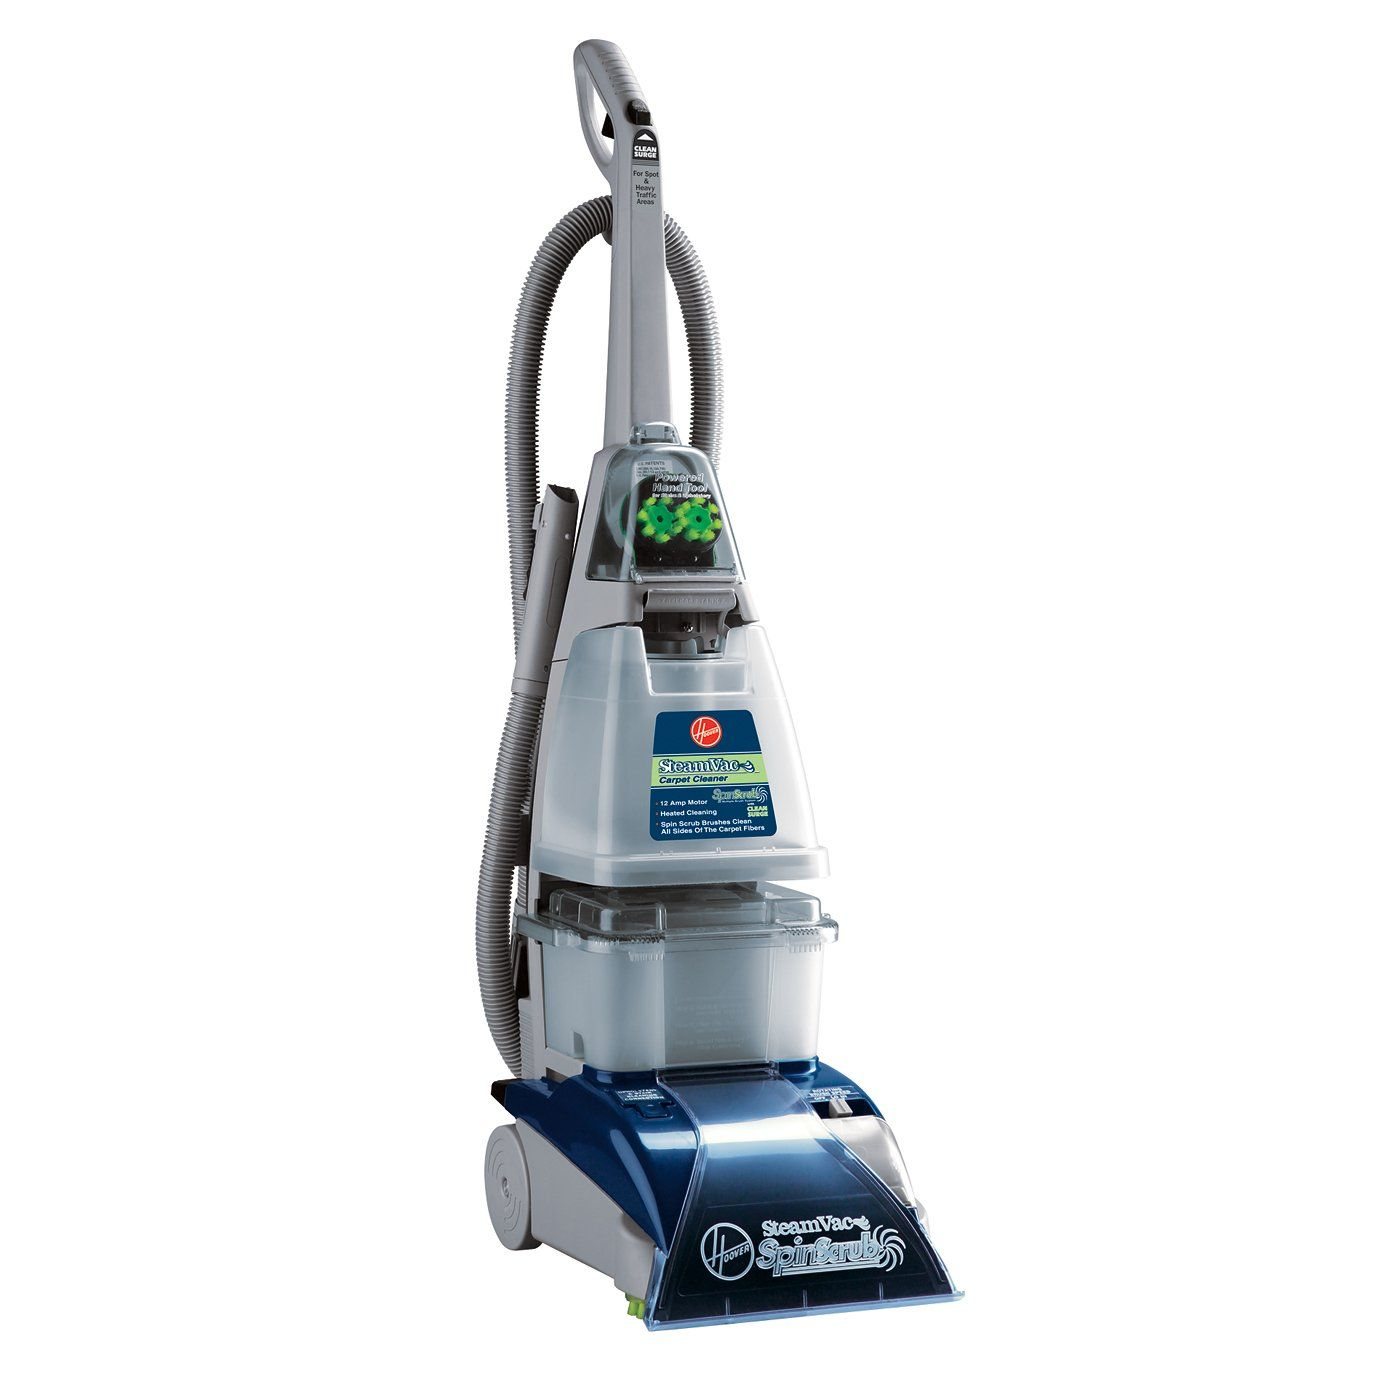 Carpet Cleaning Before And After White Vinegar carpet cleaning machine home.Carpet Cleaning Machine Home.